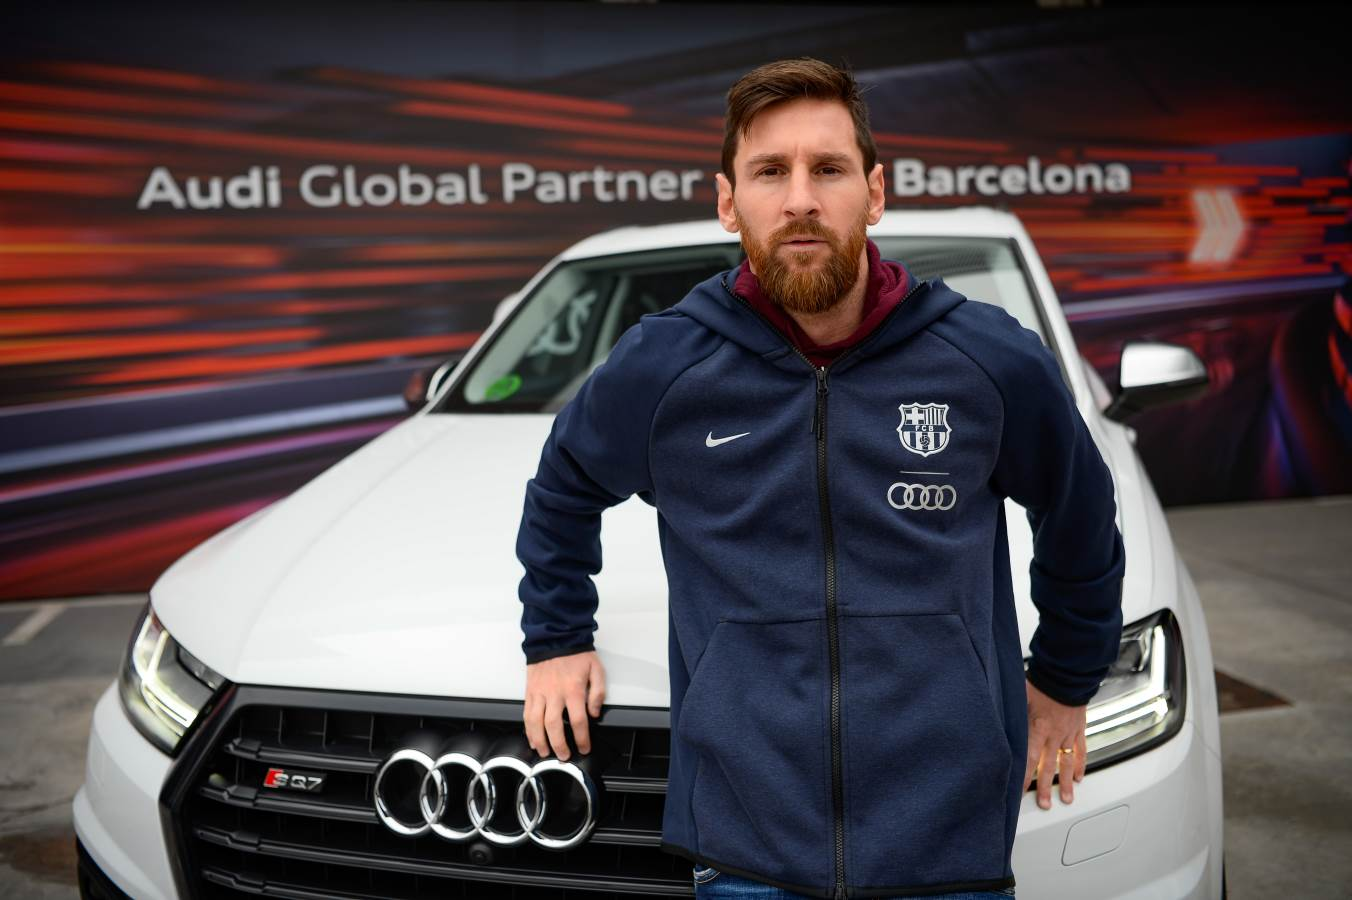 Barca Stars Receive Their Audi Cars